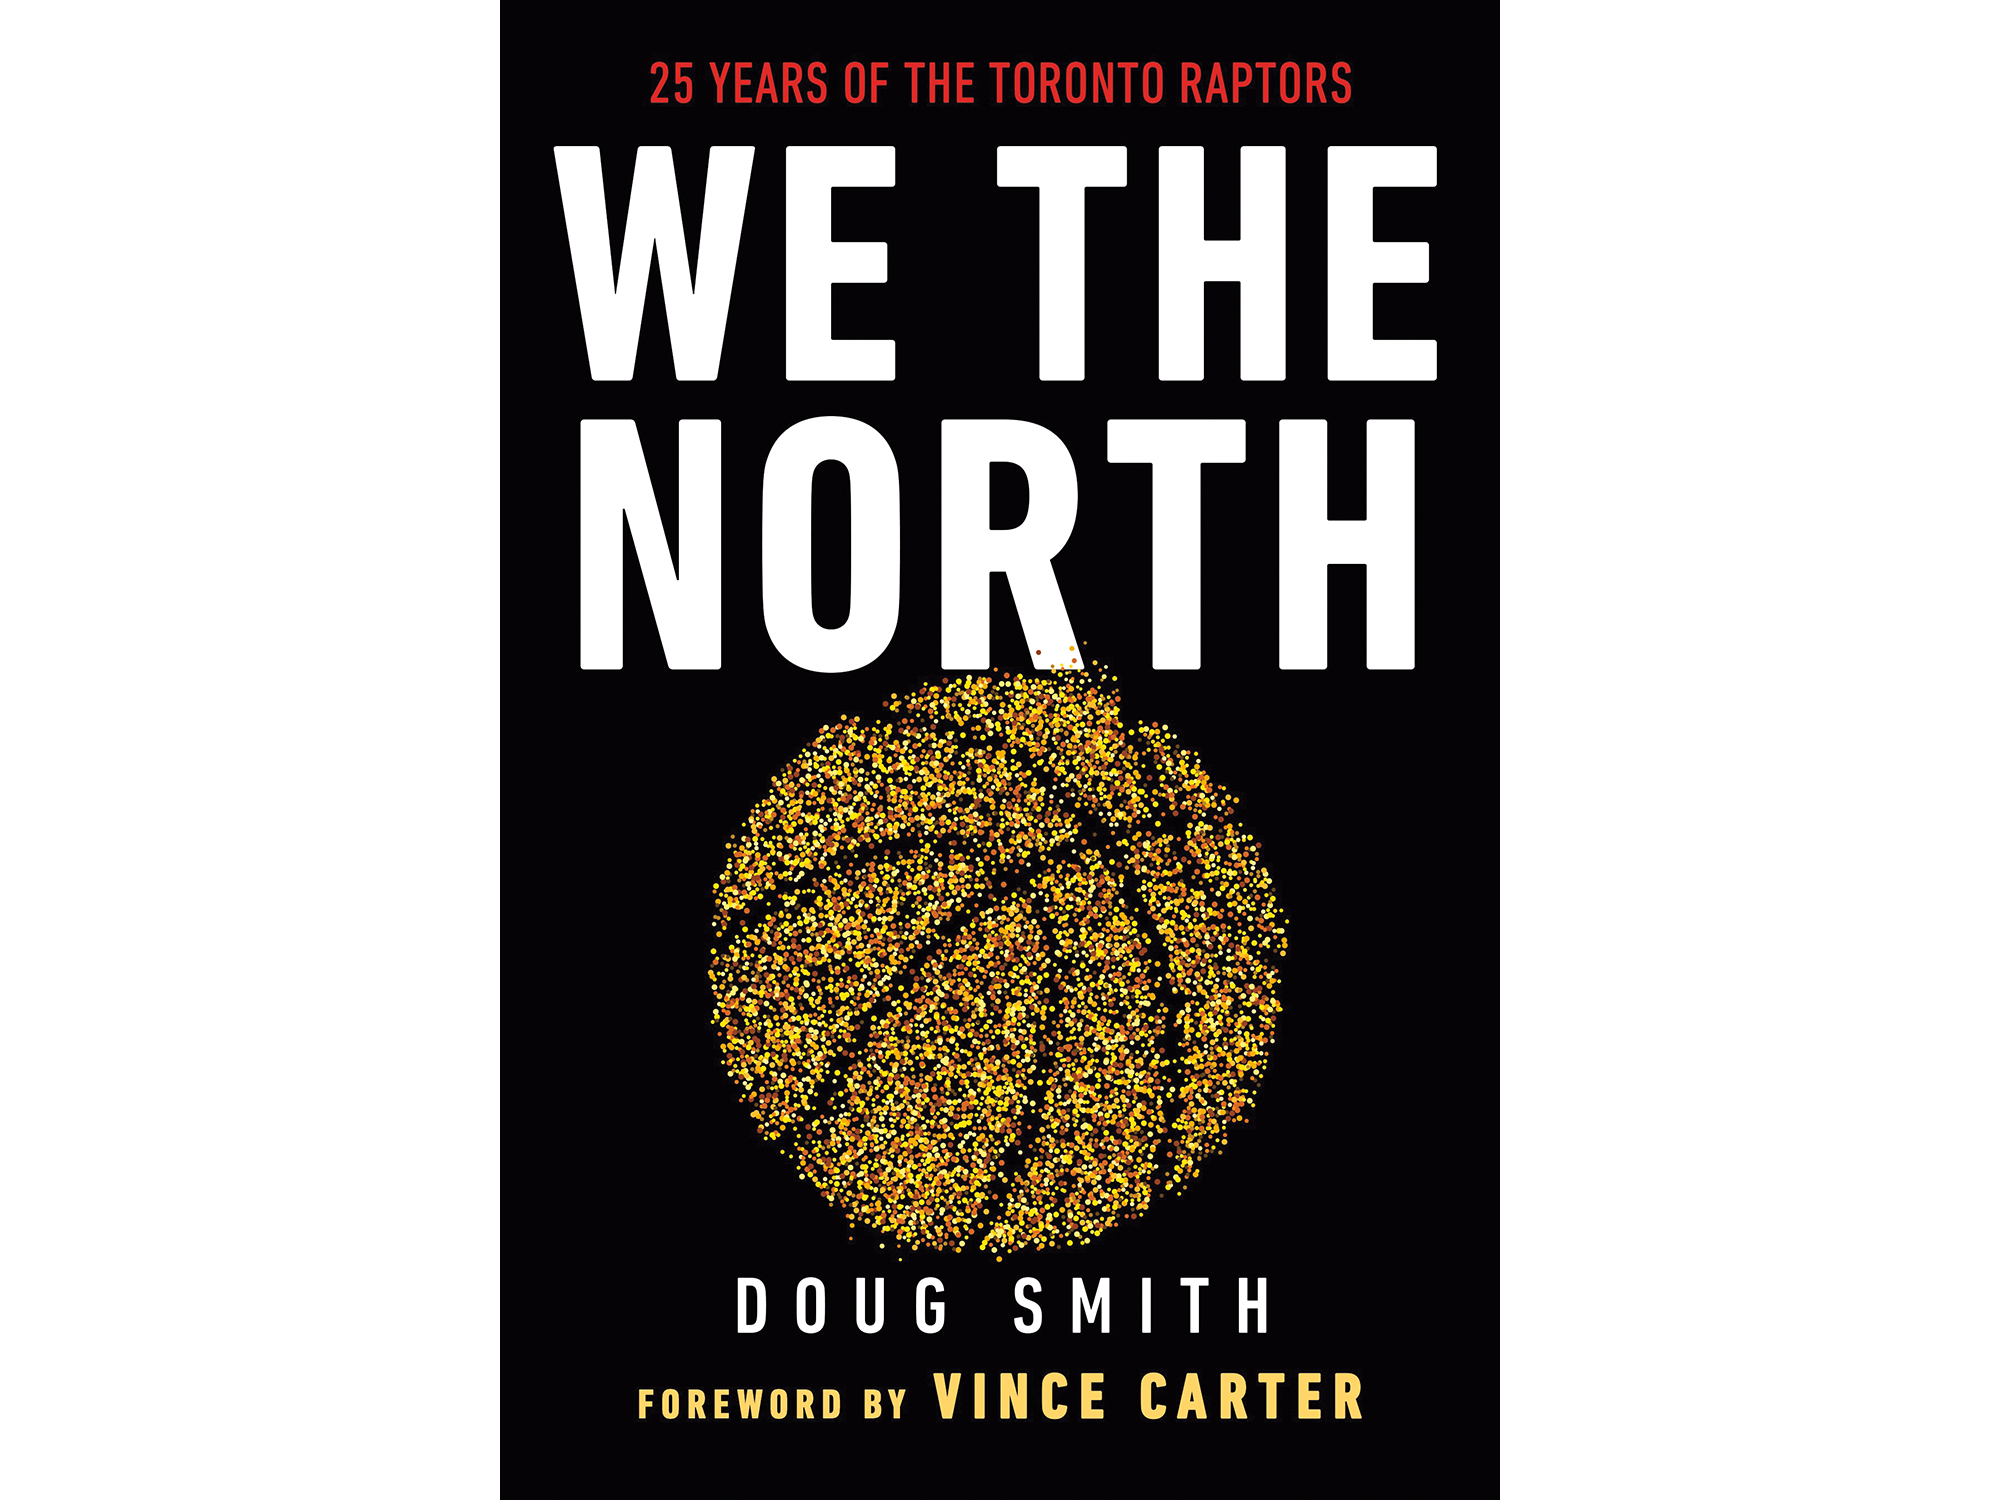 Doug Smith's We The North cover